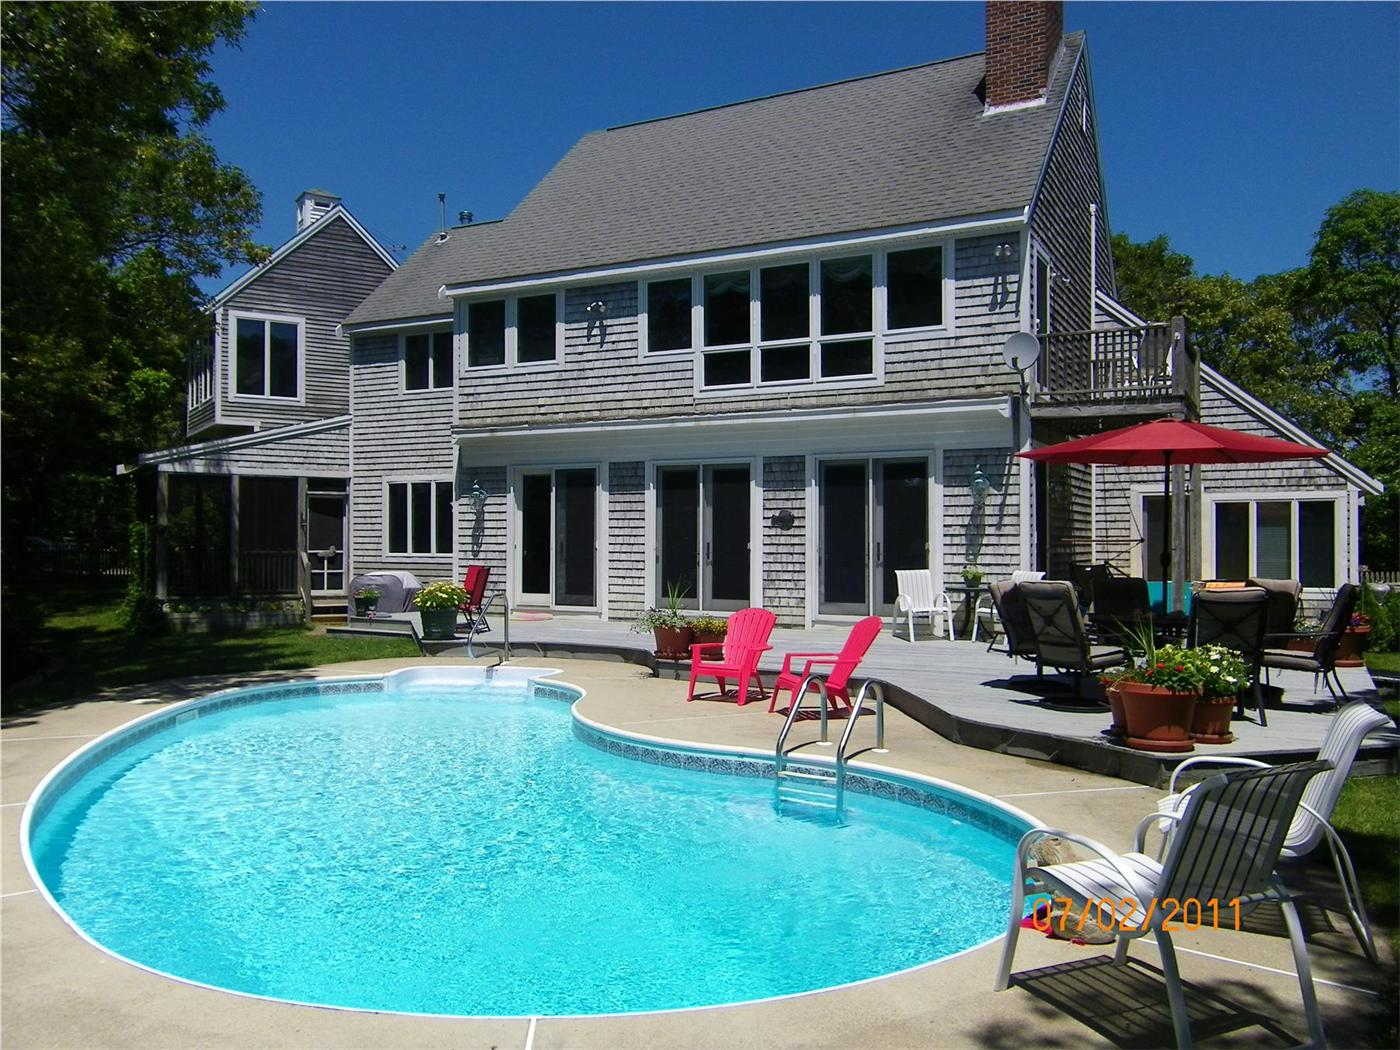 Centerville Vacation Rental home in Centerville MA 02632 ...